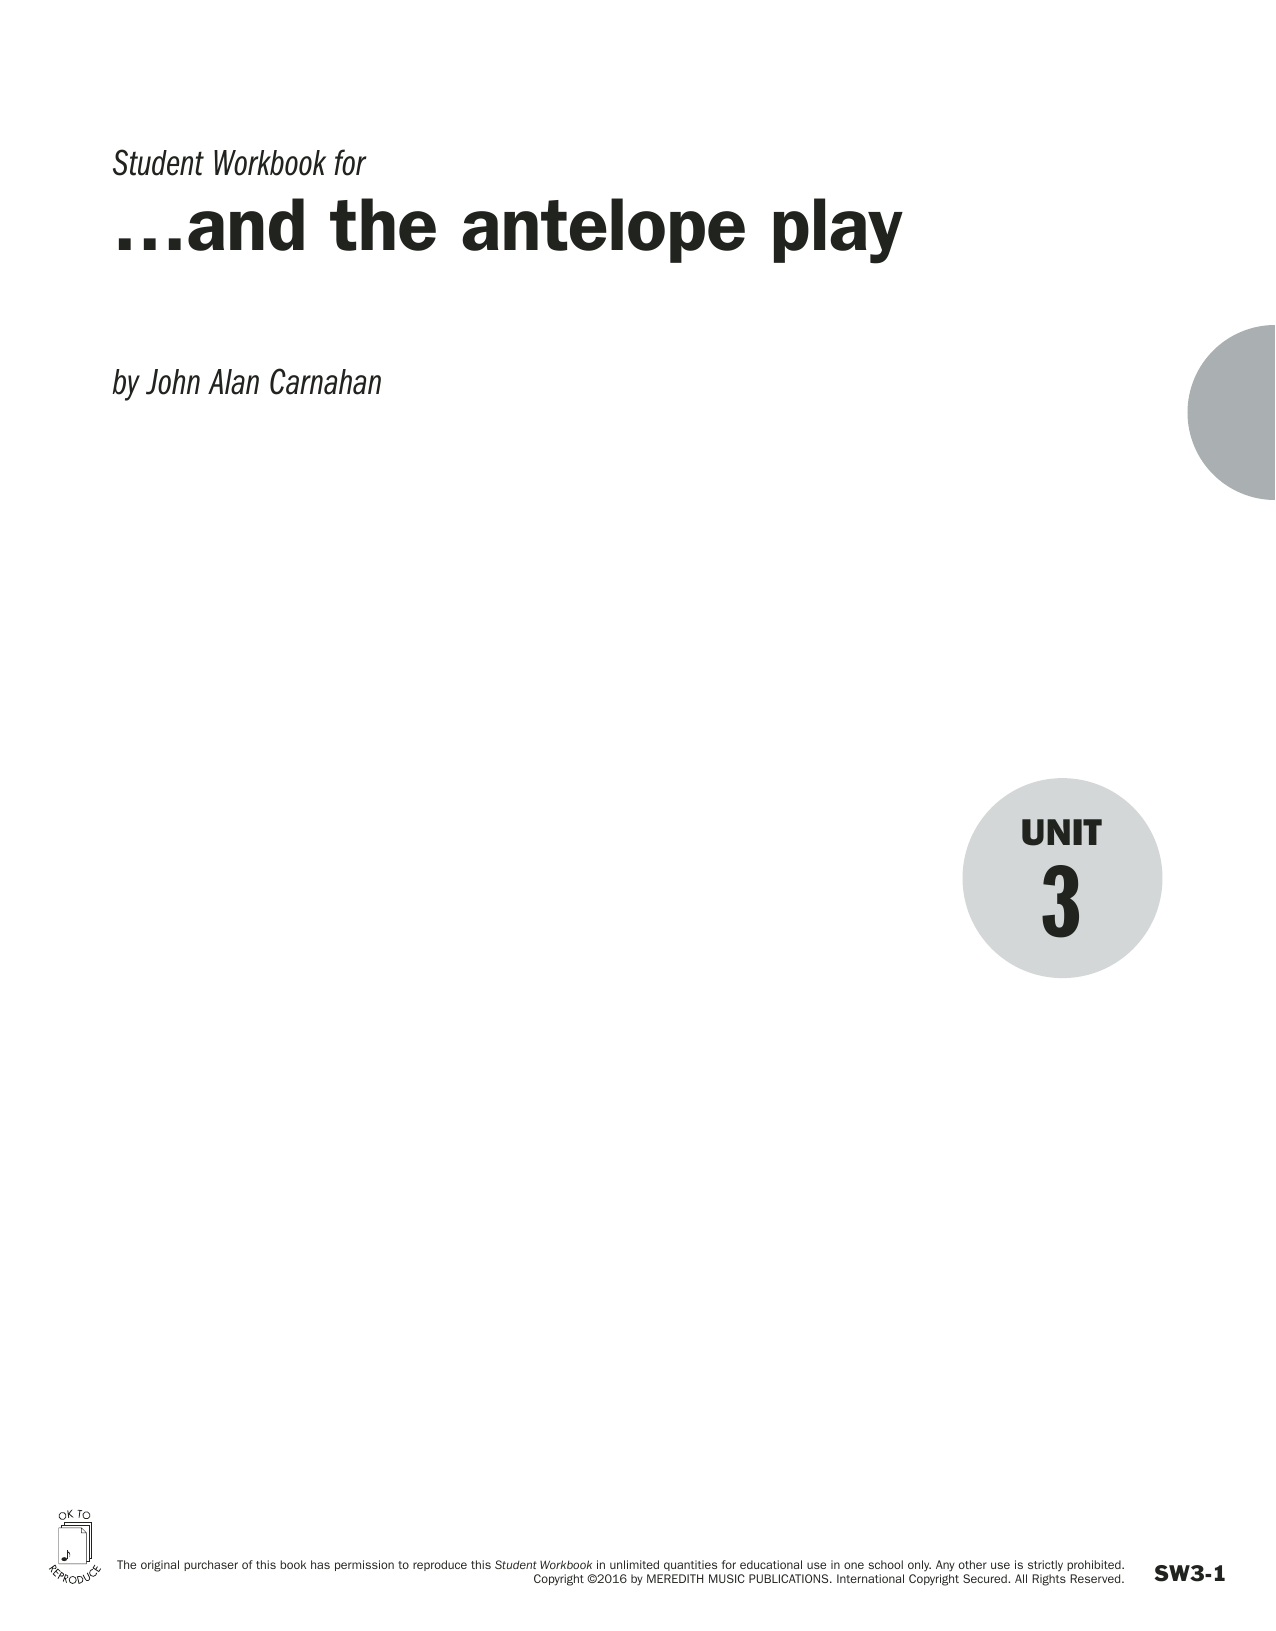 Guides to Band Masterworks, Vol. 6 - Student Workbook - and the antelope play Sheet Music